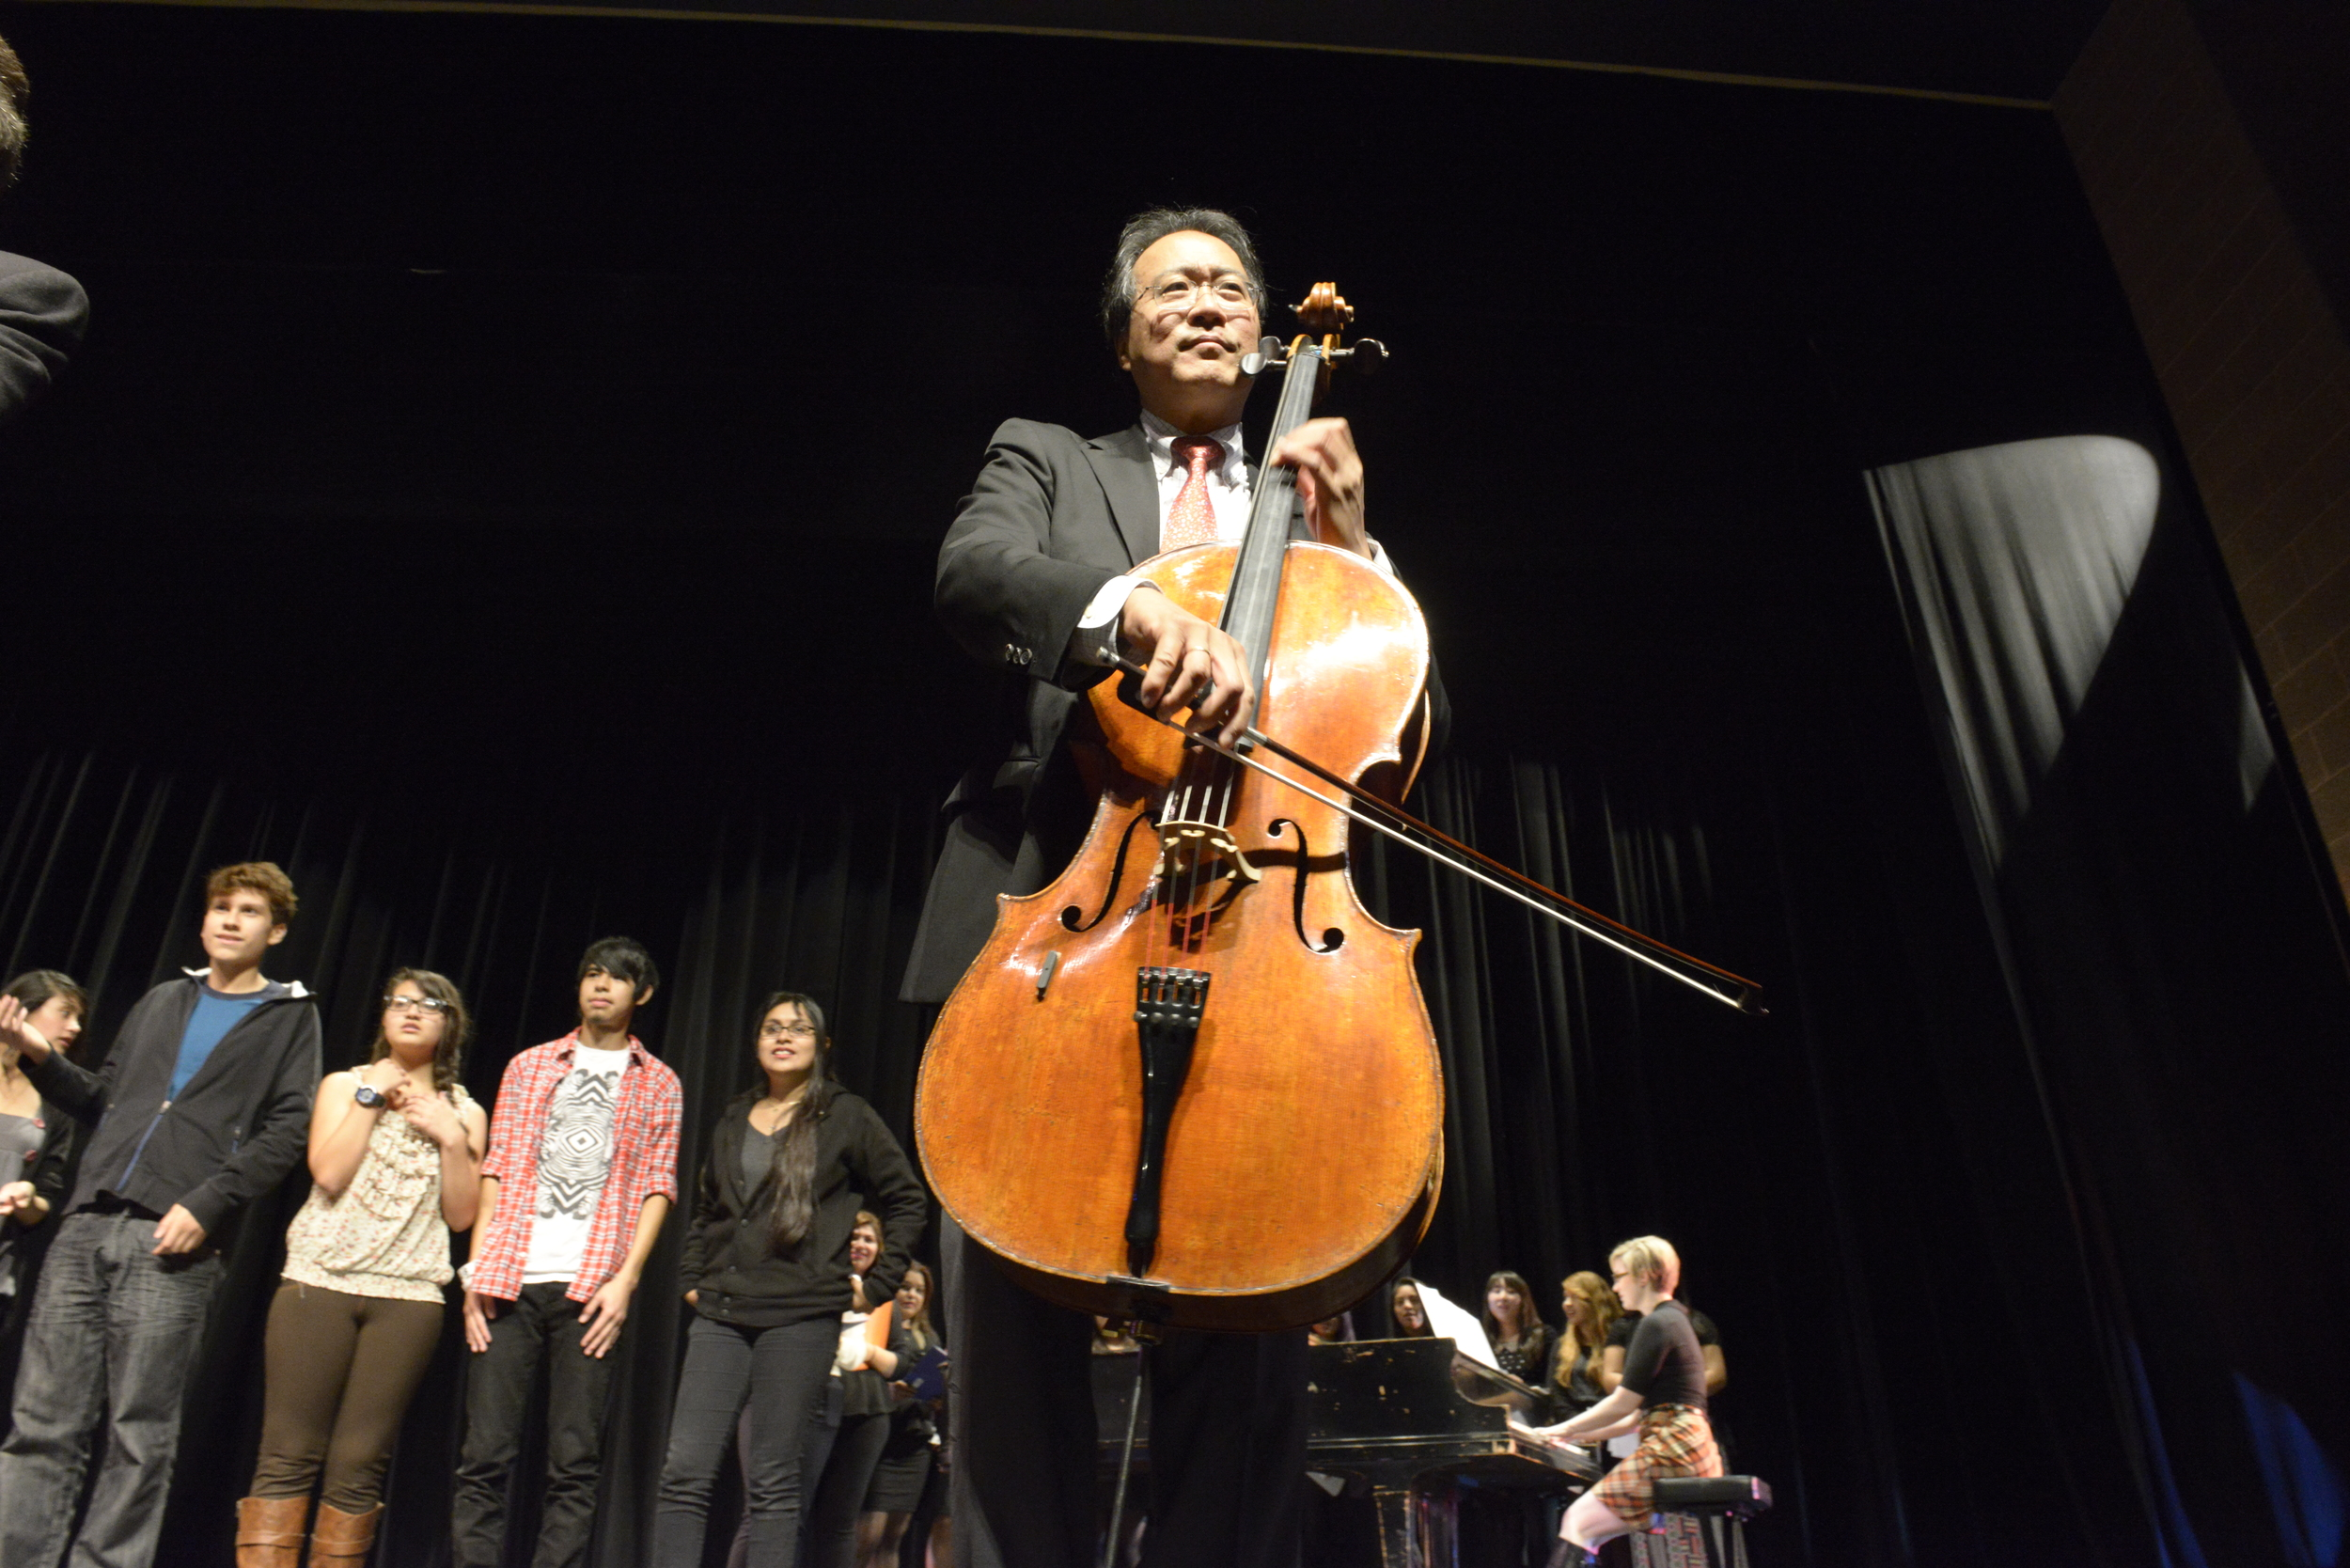 Yo-Yo Ma,   Judson and Joyce Green Creative Consultant, Chicago Symphony Orchestra, engages the crowd at Benito Juarez Community Academy